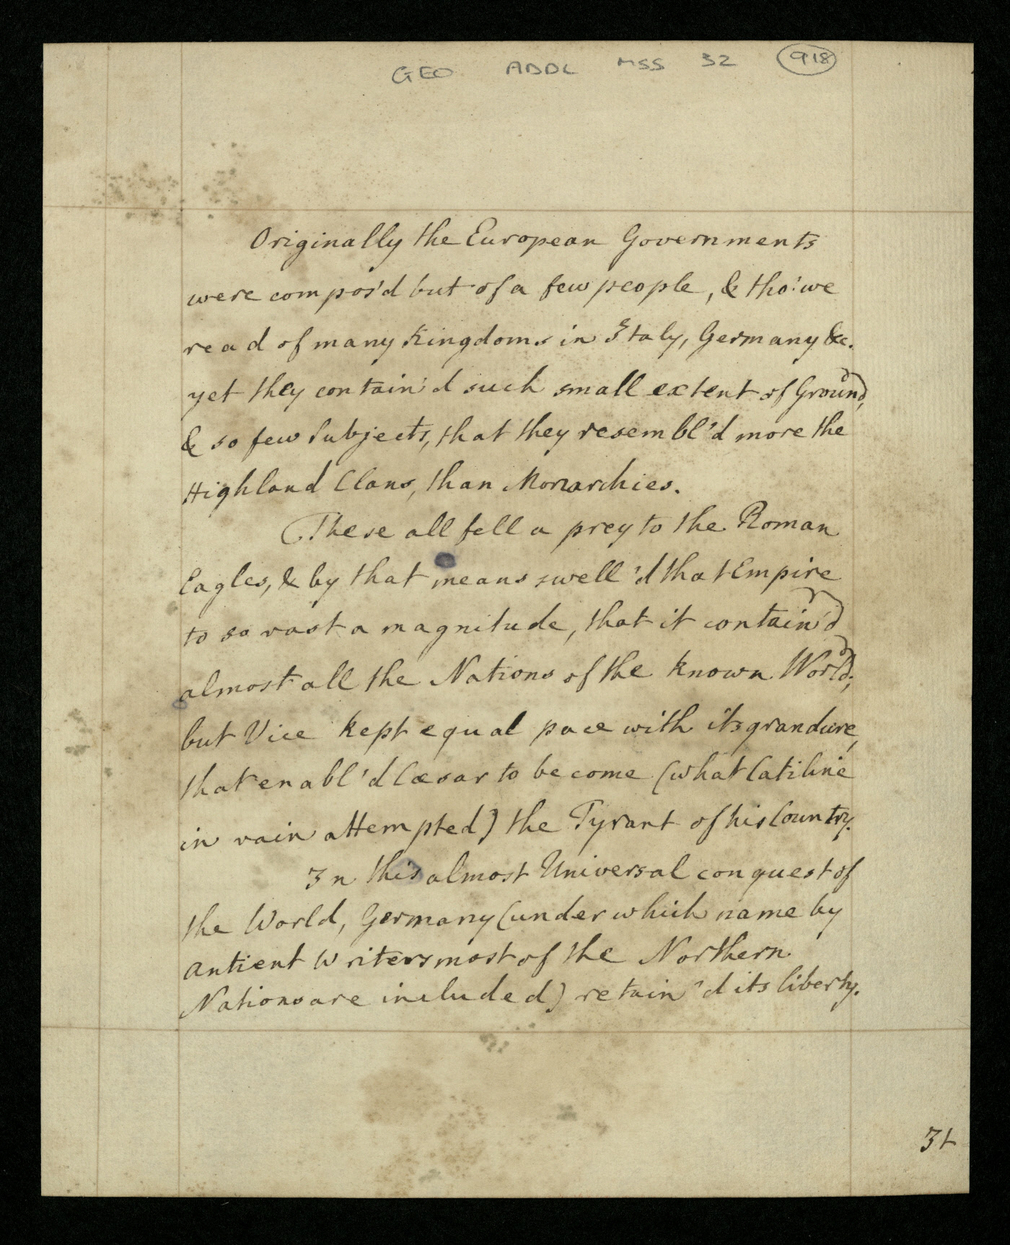 Archive document on Government from the collection of George III's essays